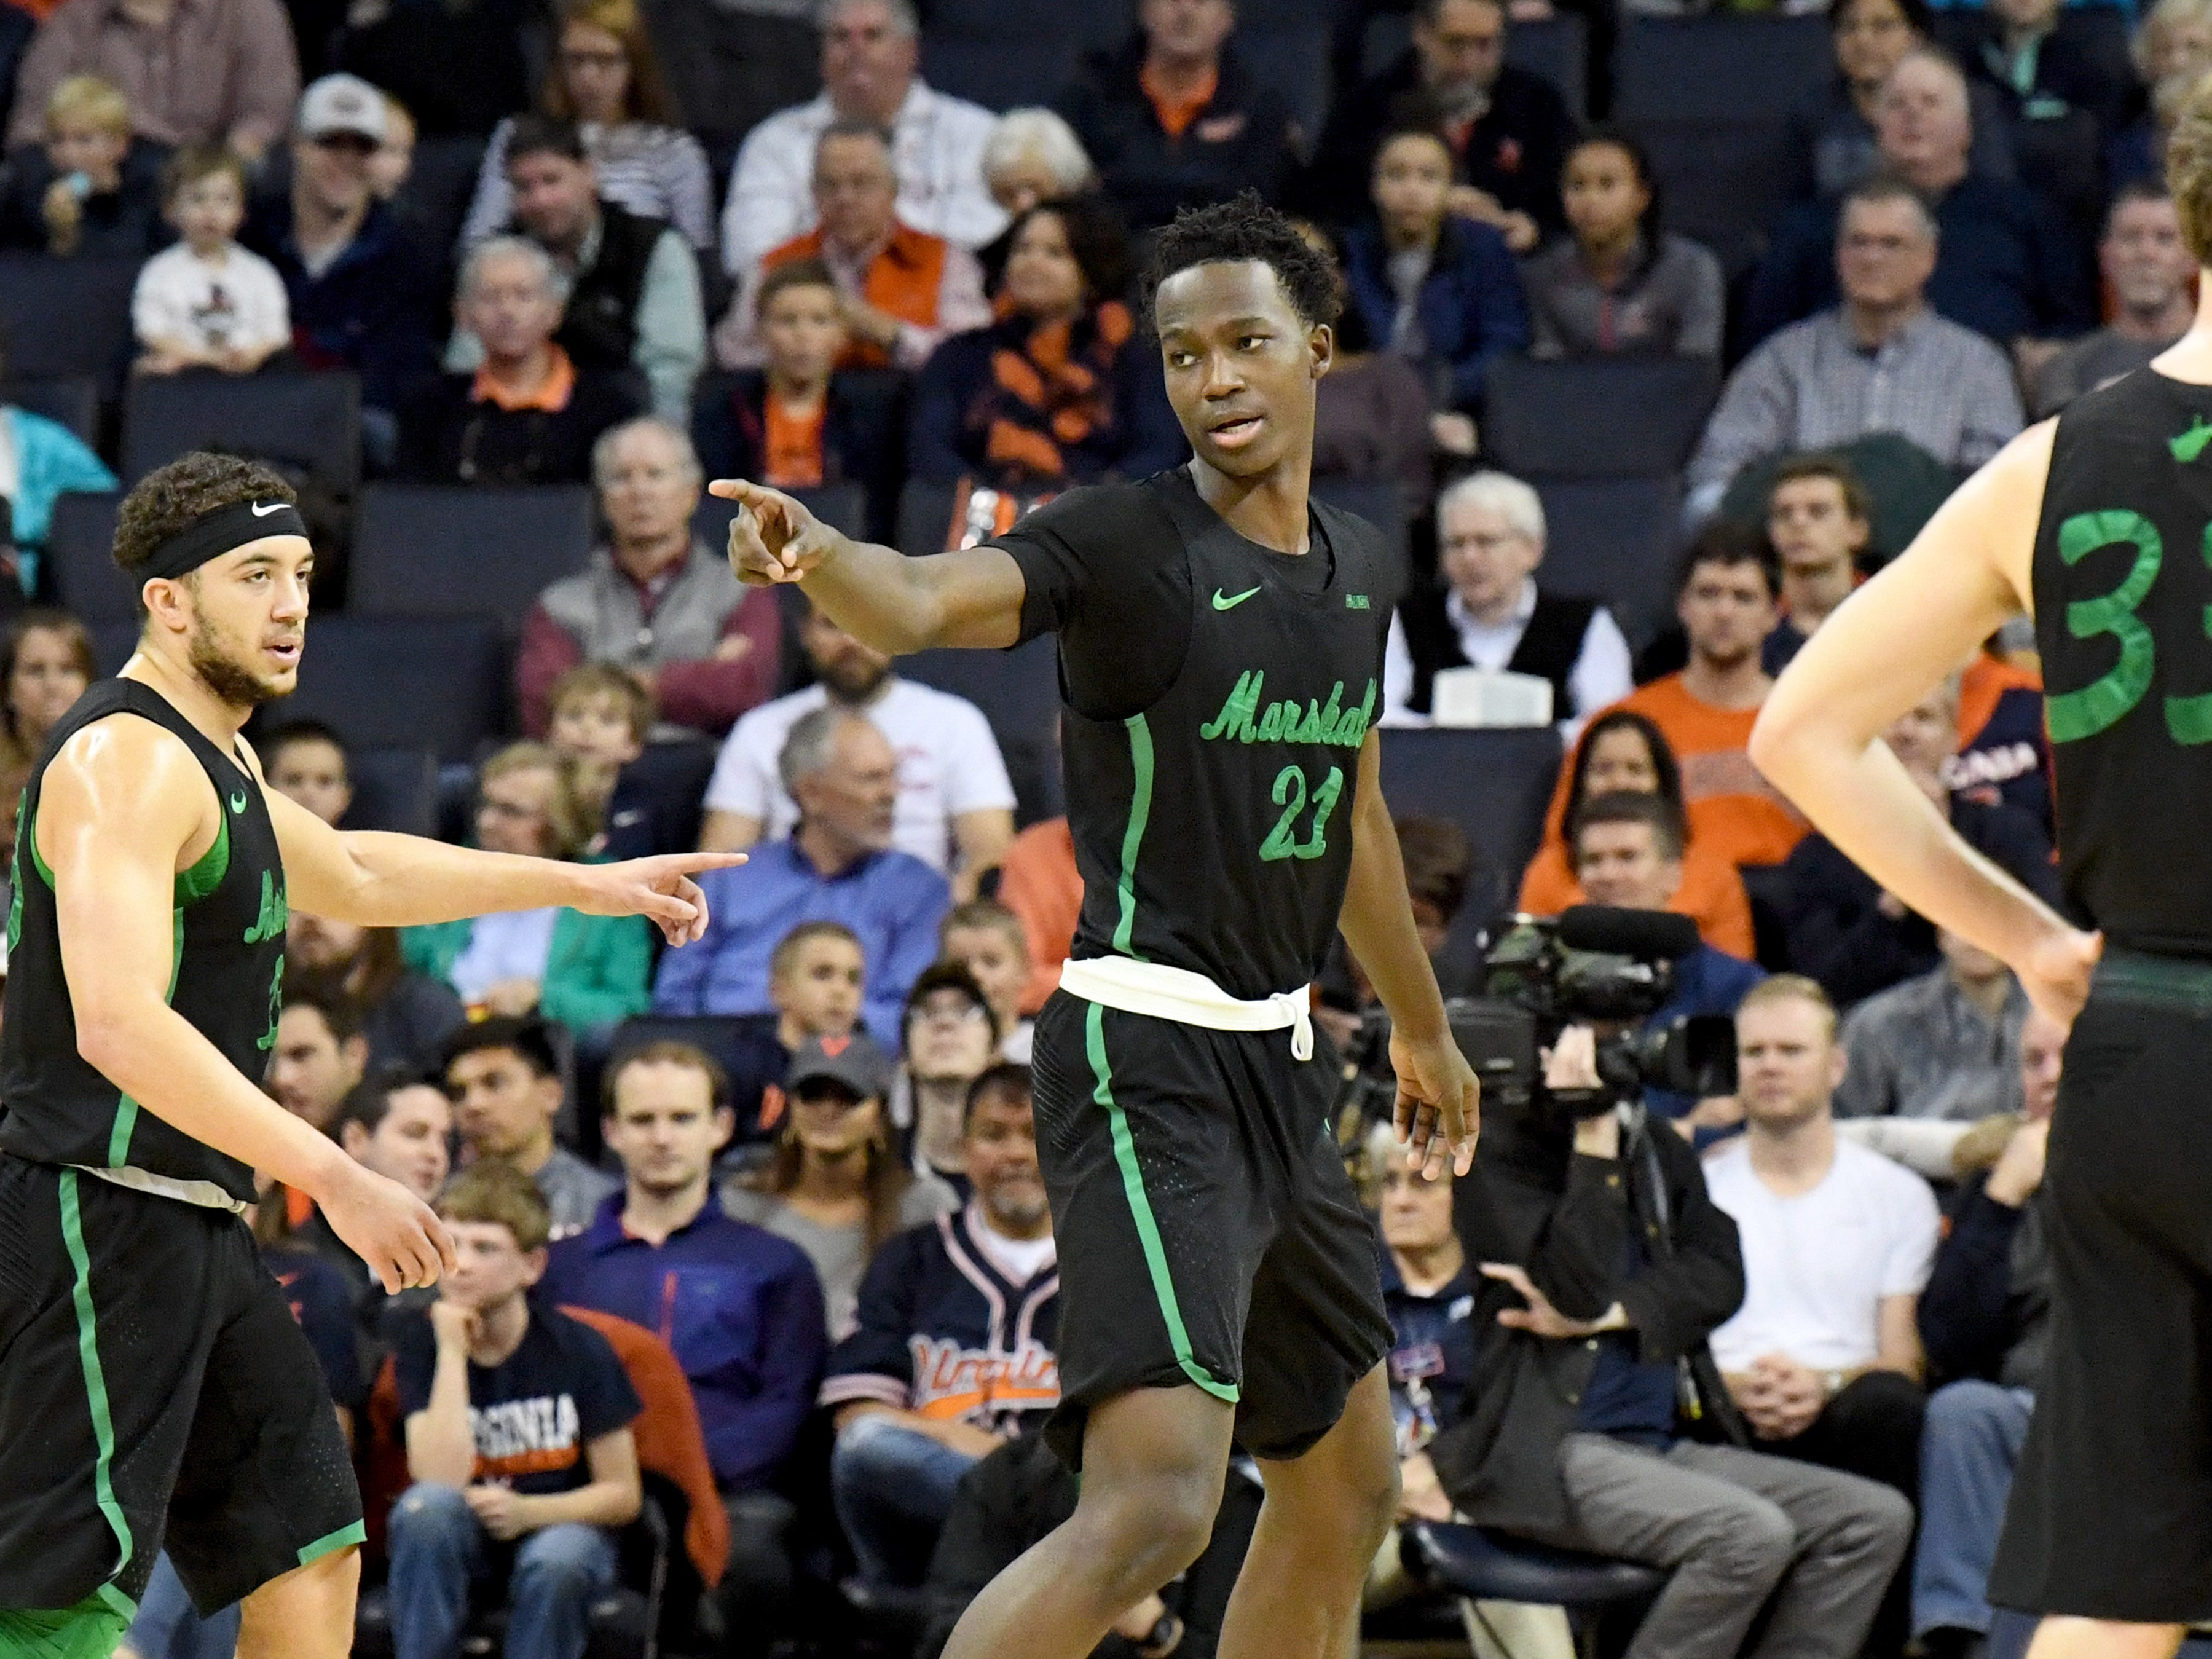 Marshall's Darius George, former R.E. Lee star, points as he communicates with teammates during their game against University of Virginia, played at the John Paul Jones Arena on Dec. 31, 2016.